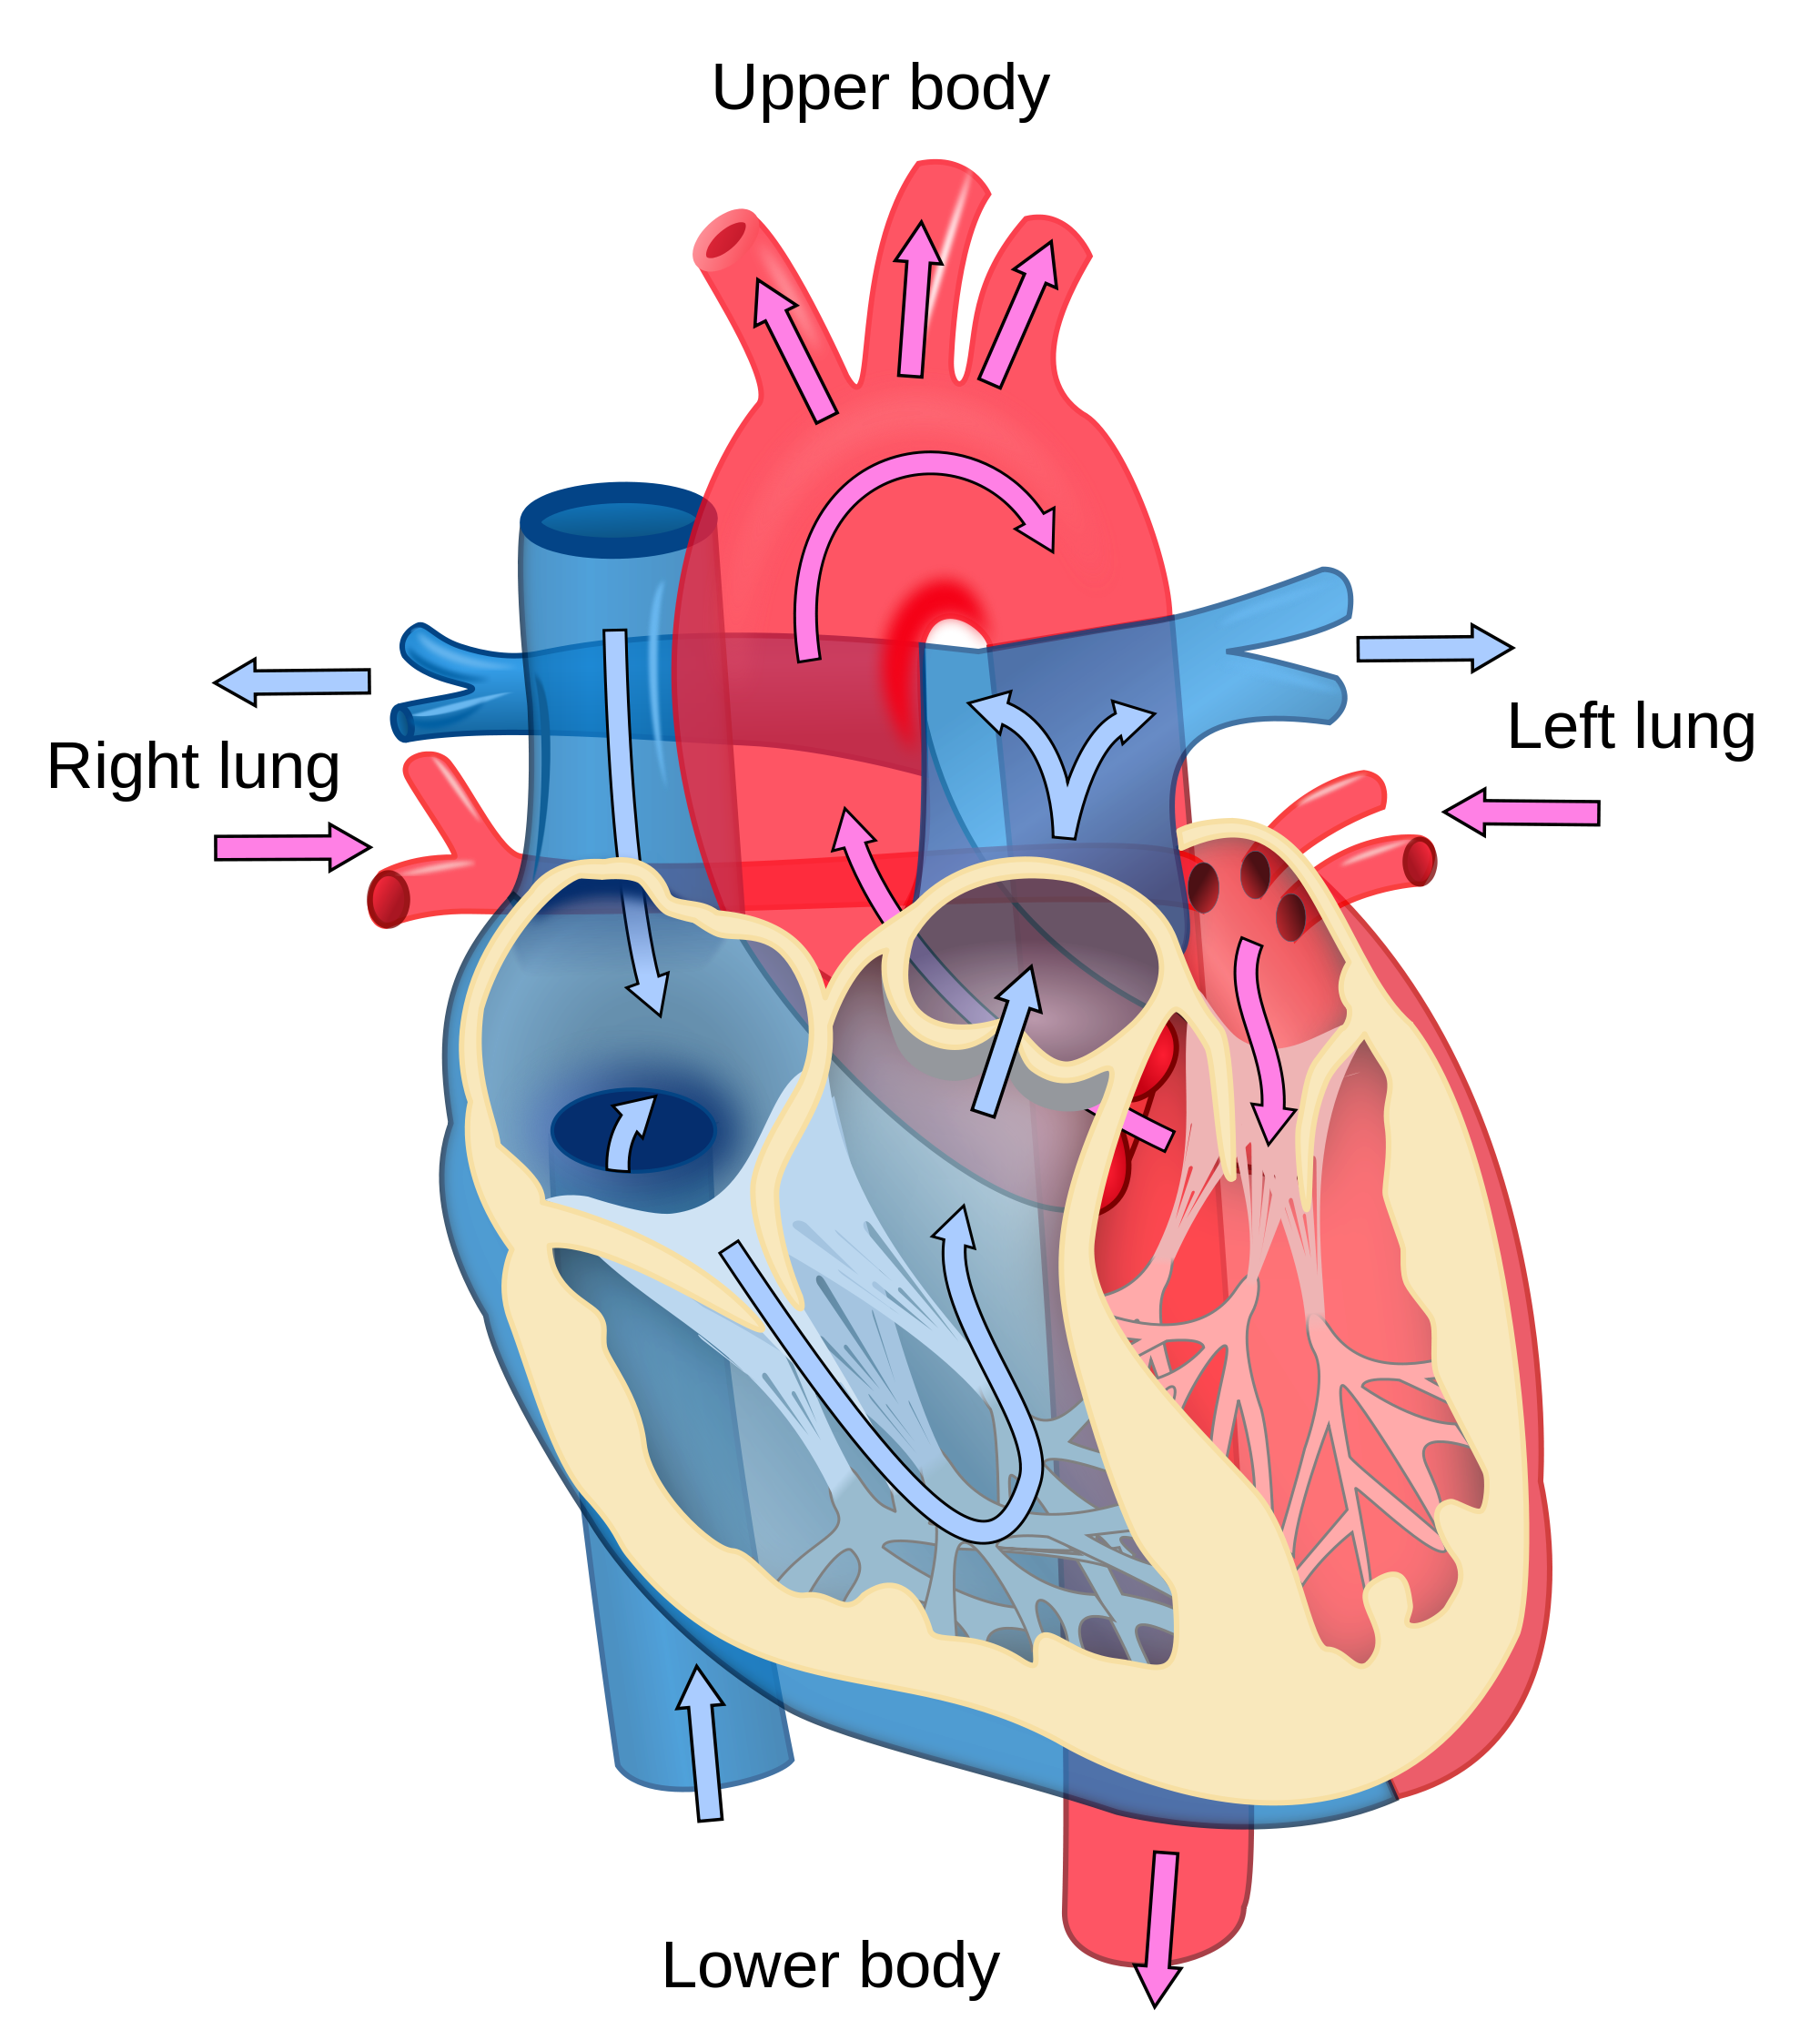 Human heart clipart blood flow clip art transparent download Body Systems - Lessons - Tes Teach clip art transparent download